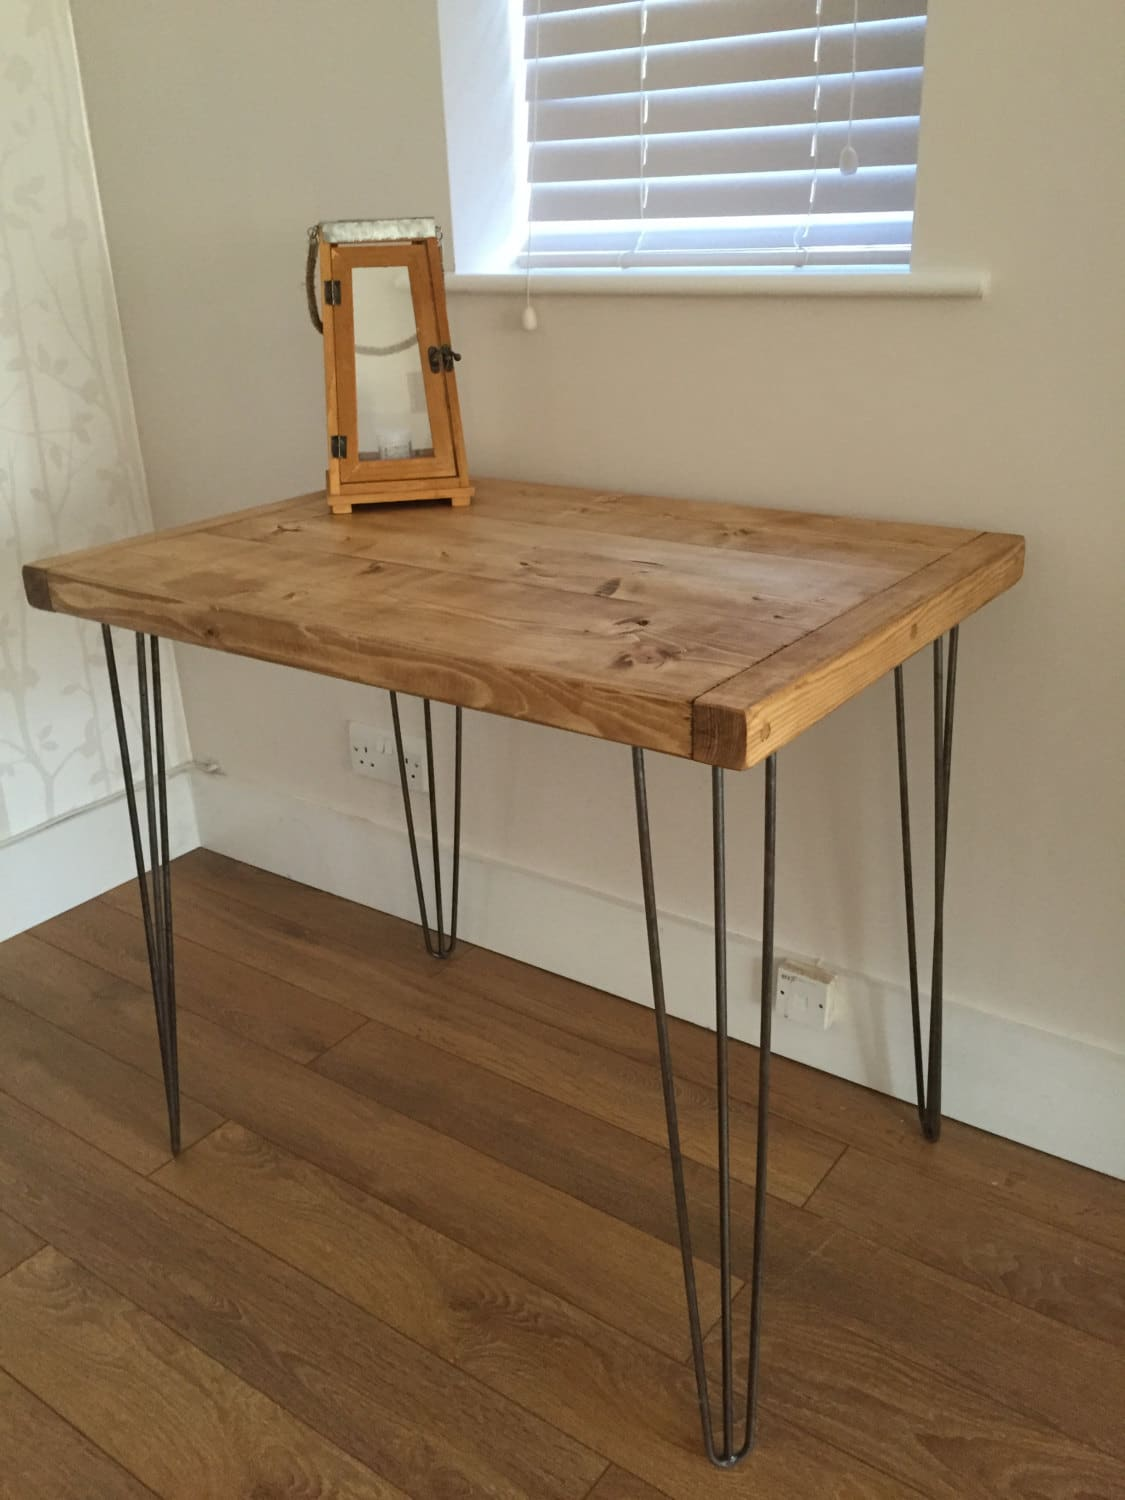 Rustic pine kitchen dining side table